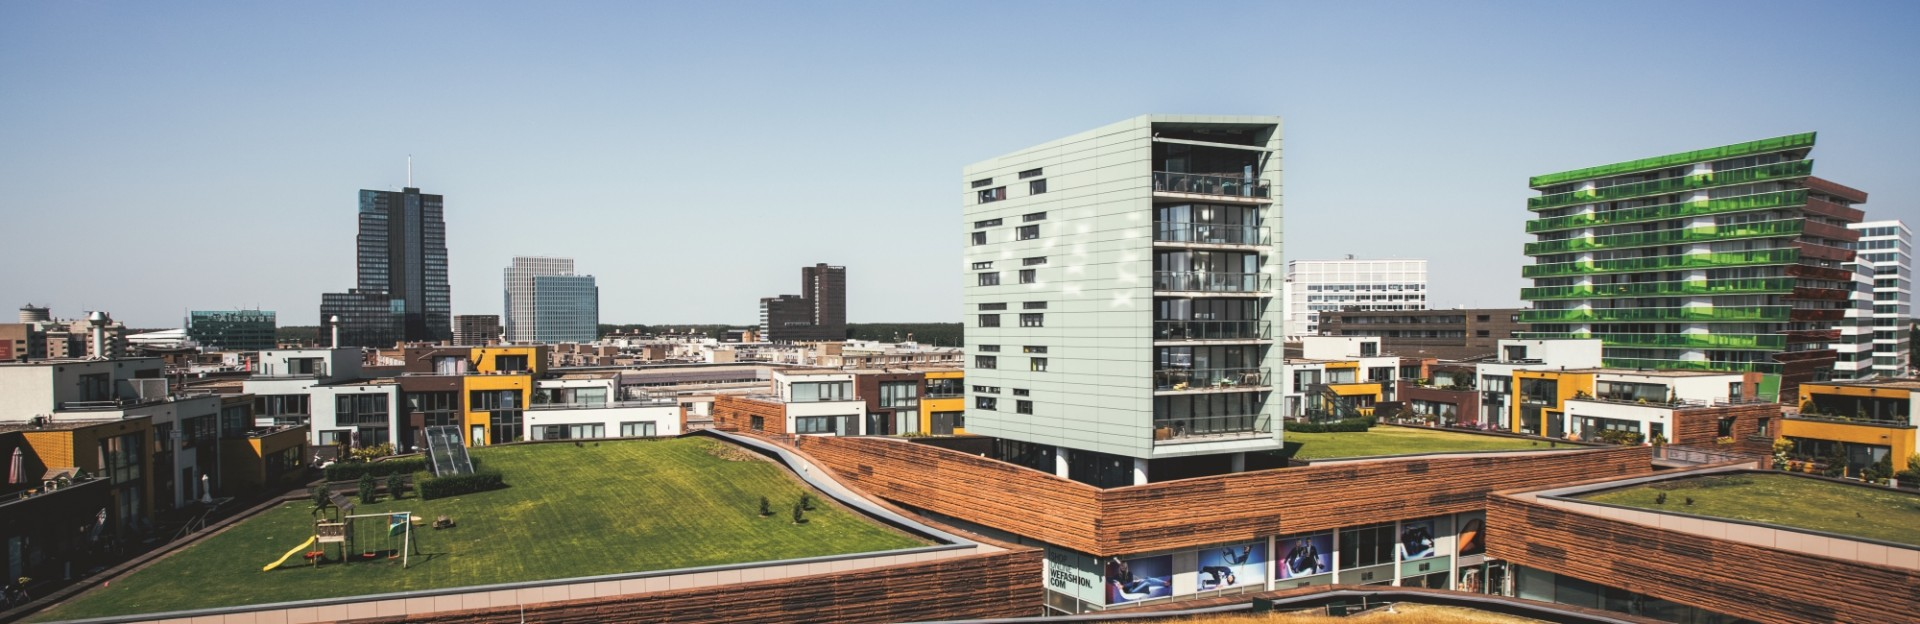 metropool-amsterdam-almere-city-marketing